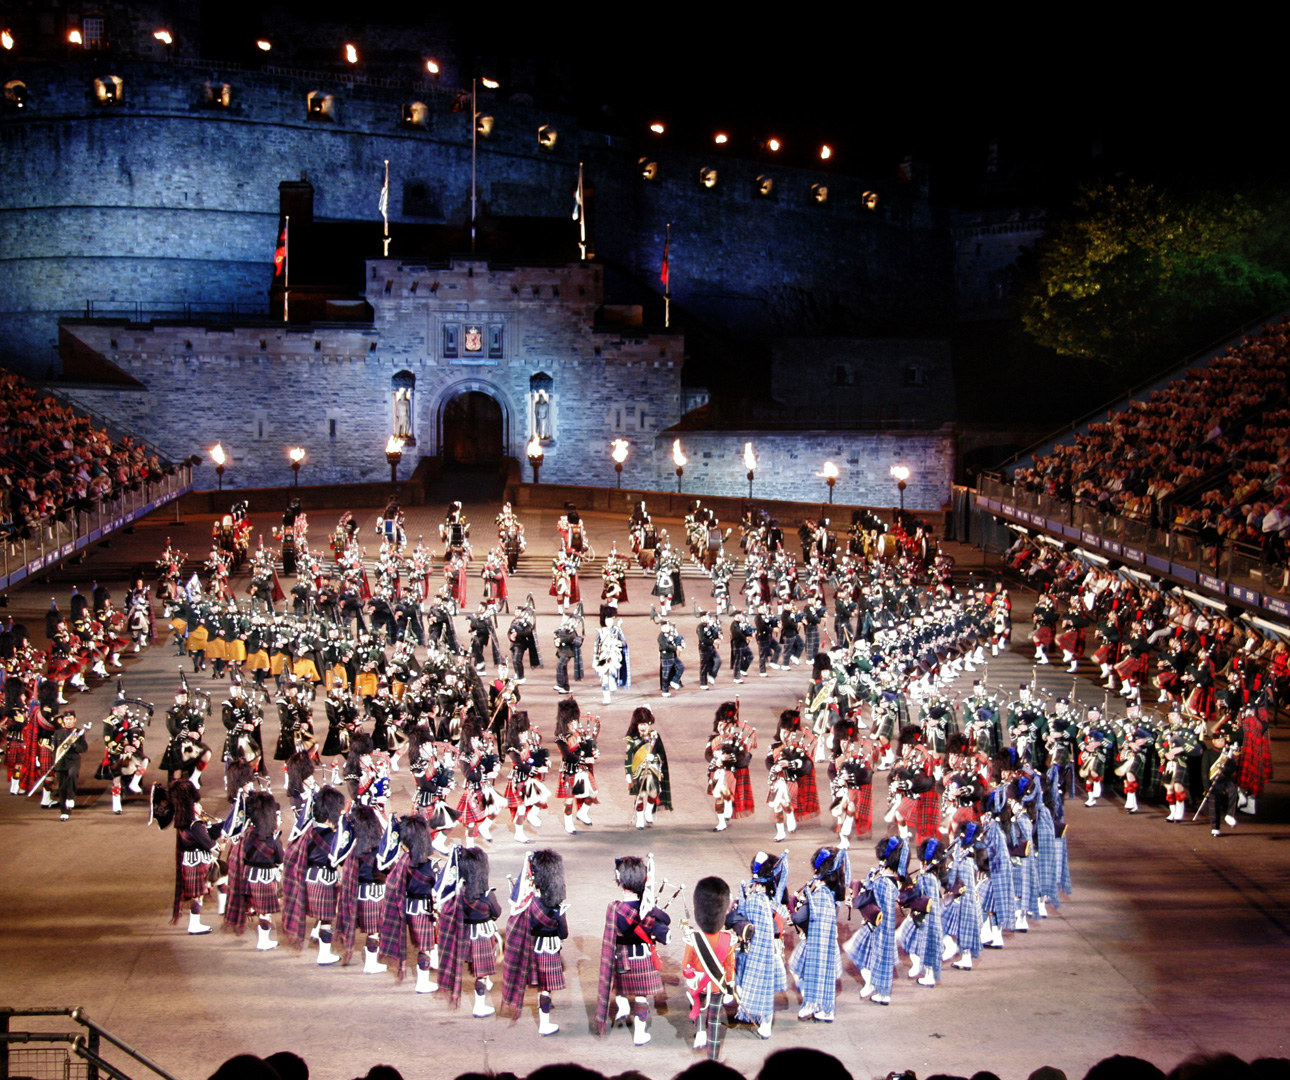 Experience the Edinburgh Tattoo with Insight Vacations